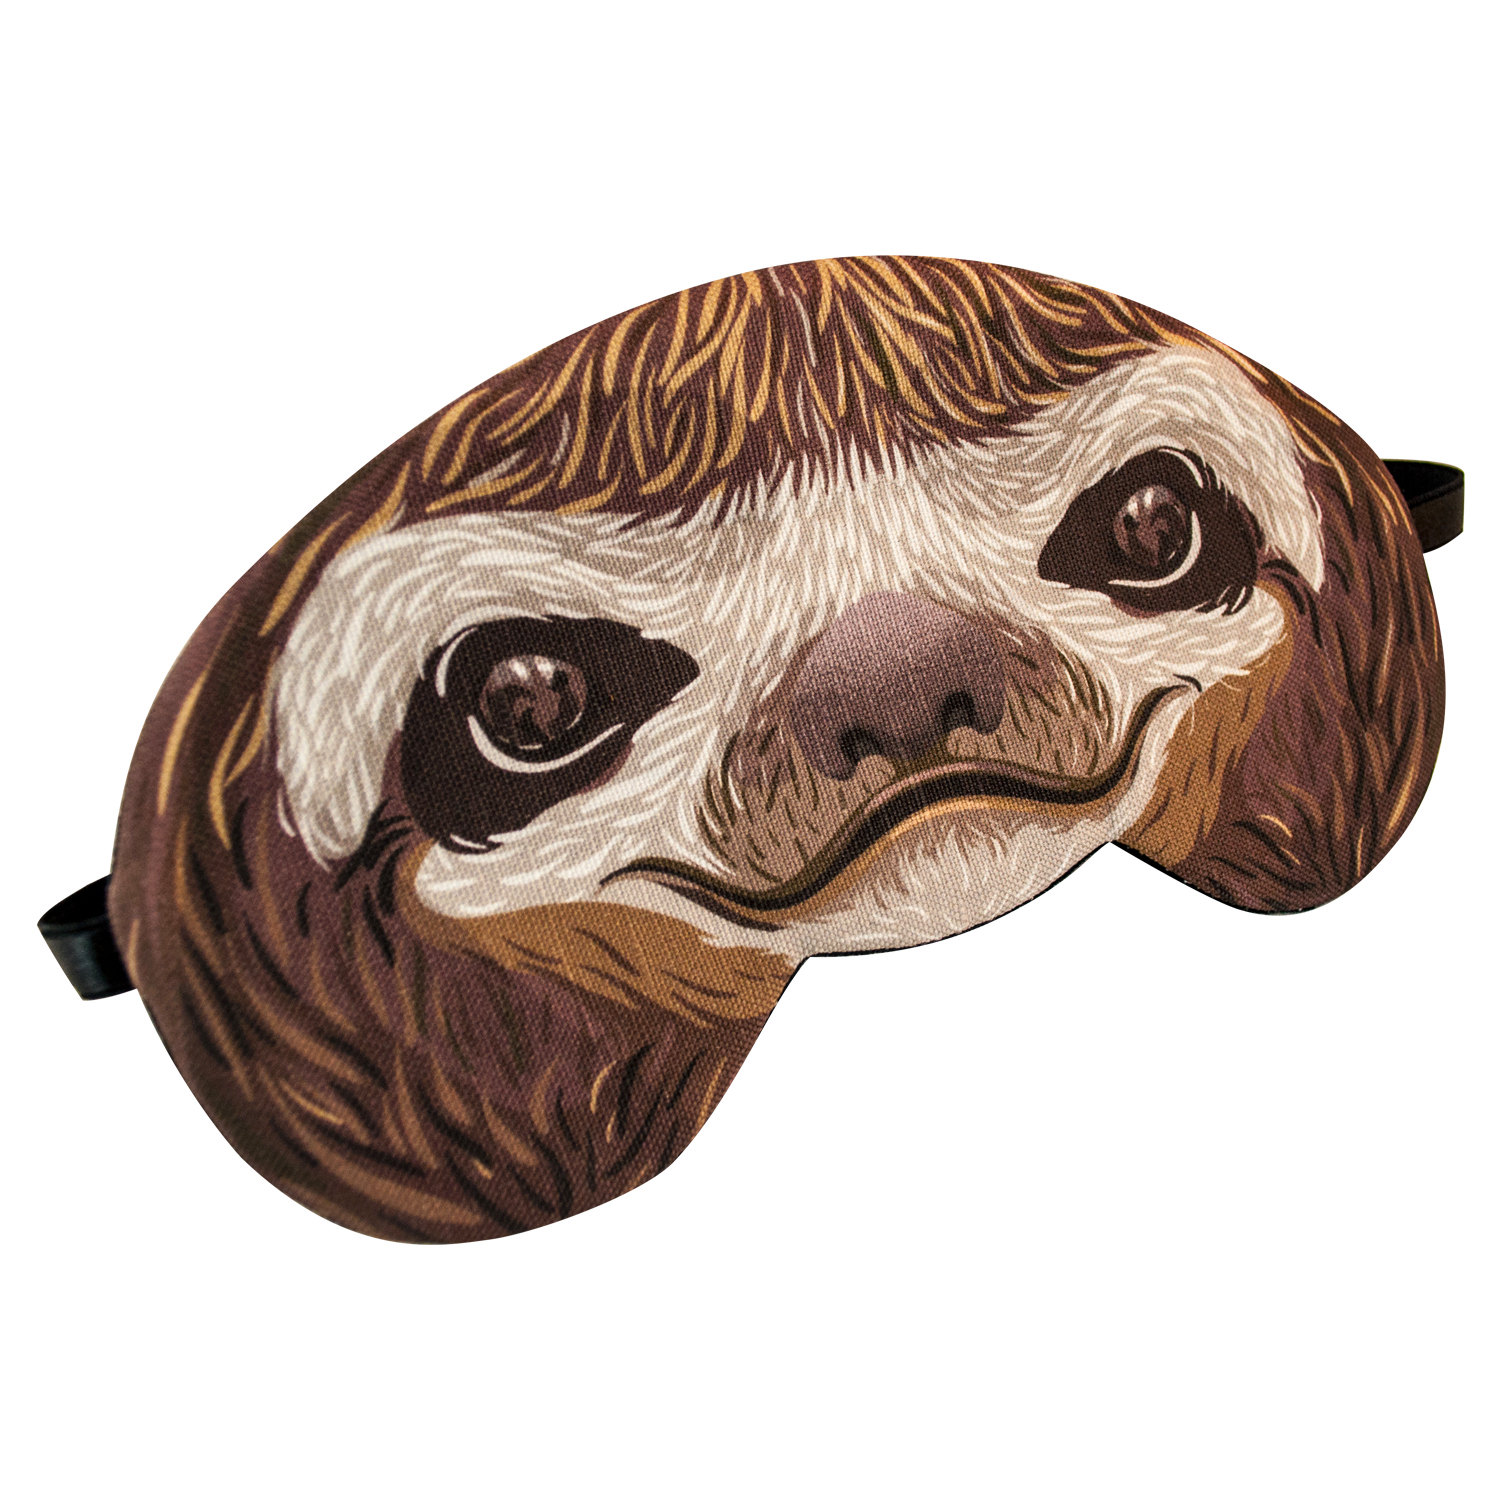 Three Toed Sloth svg #3, Download drawings